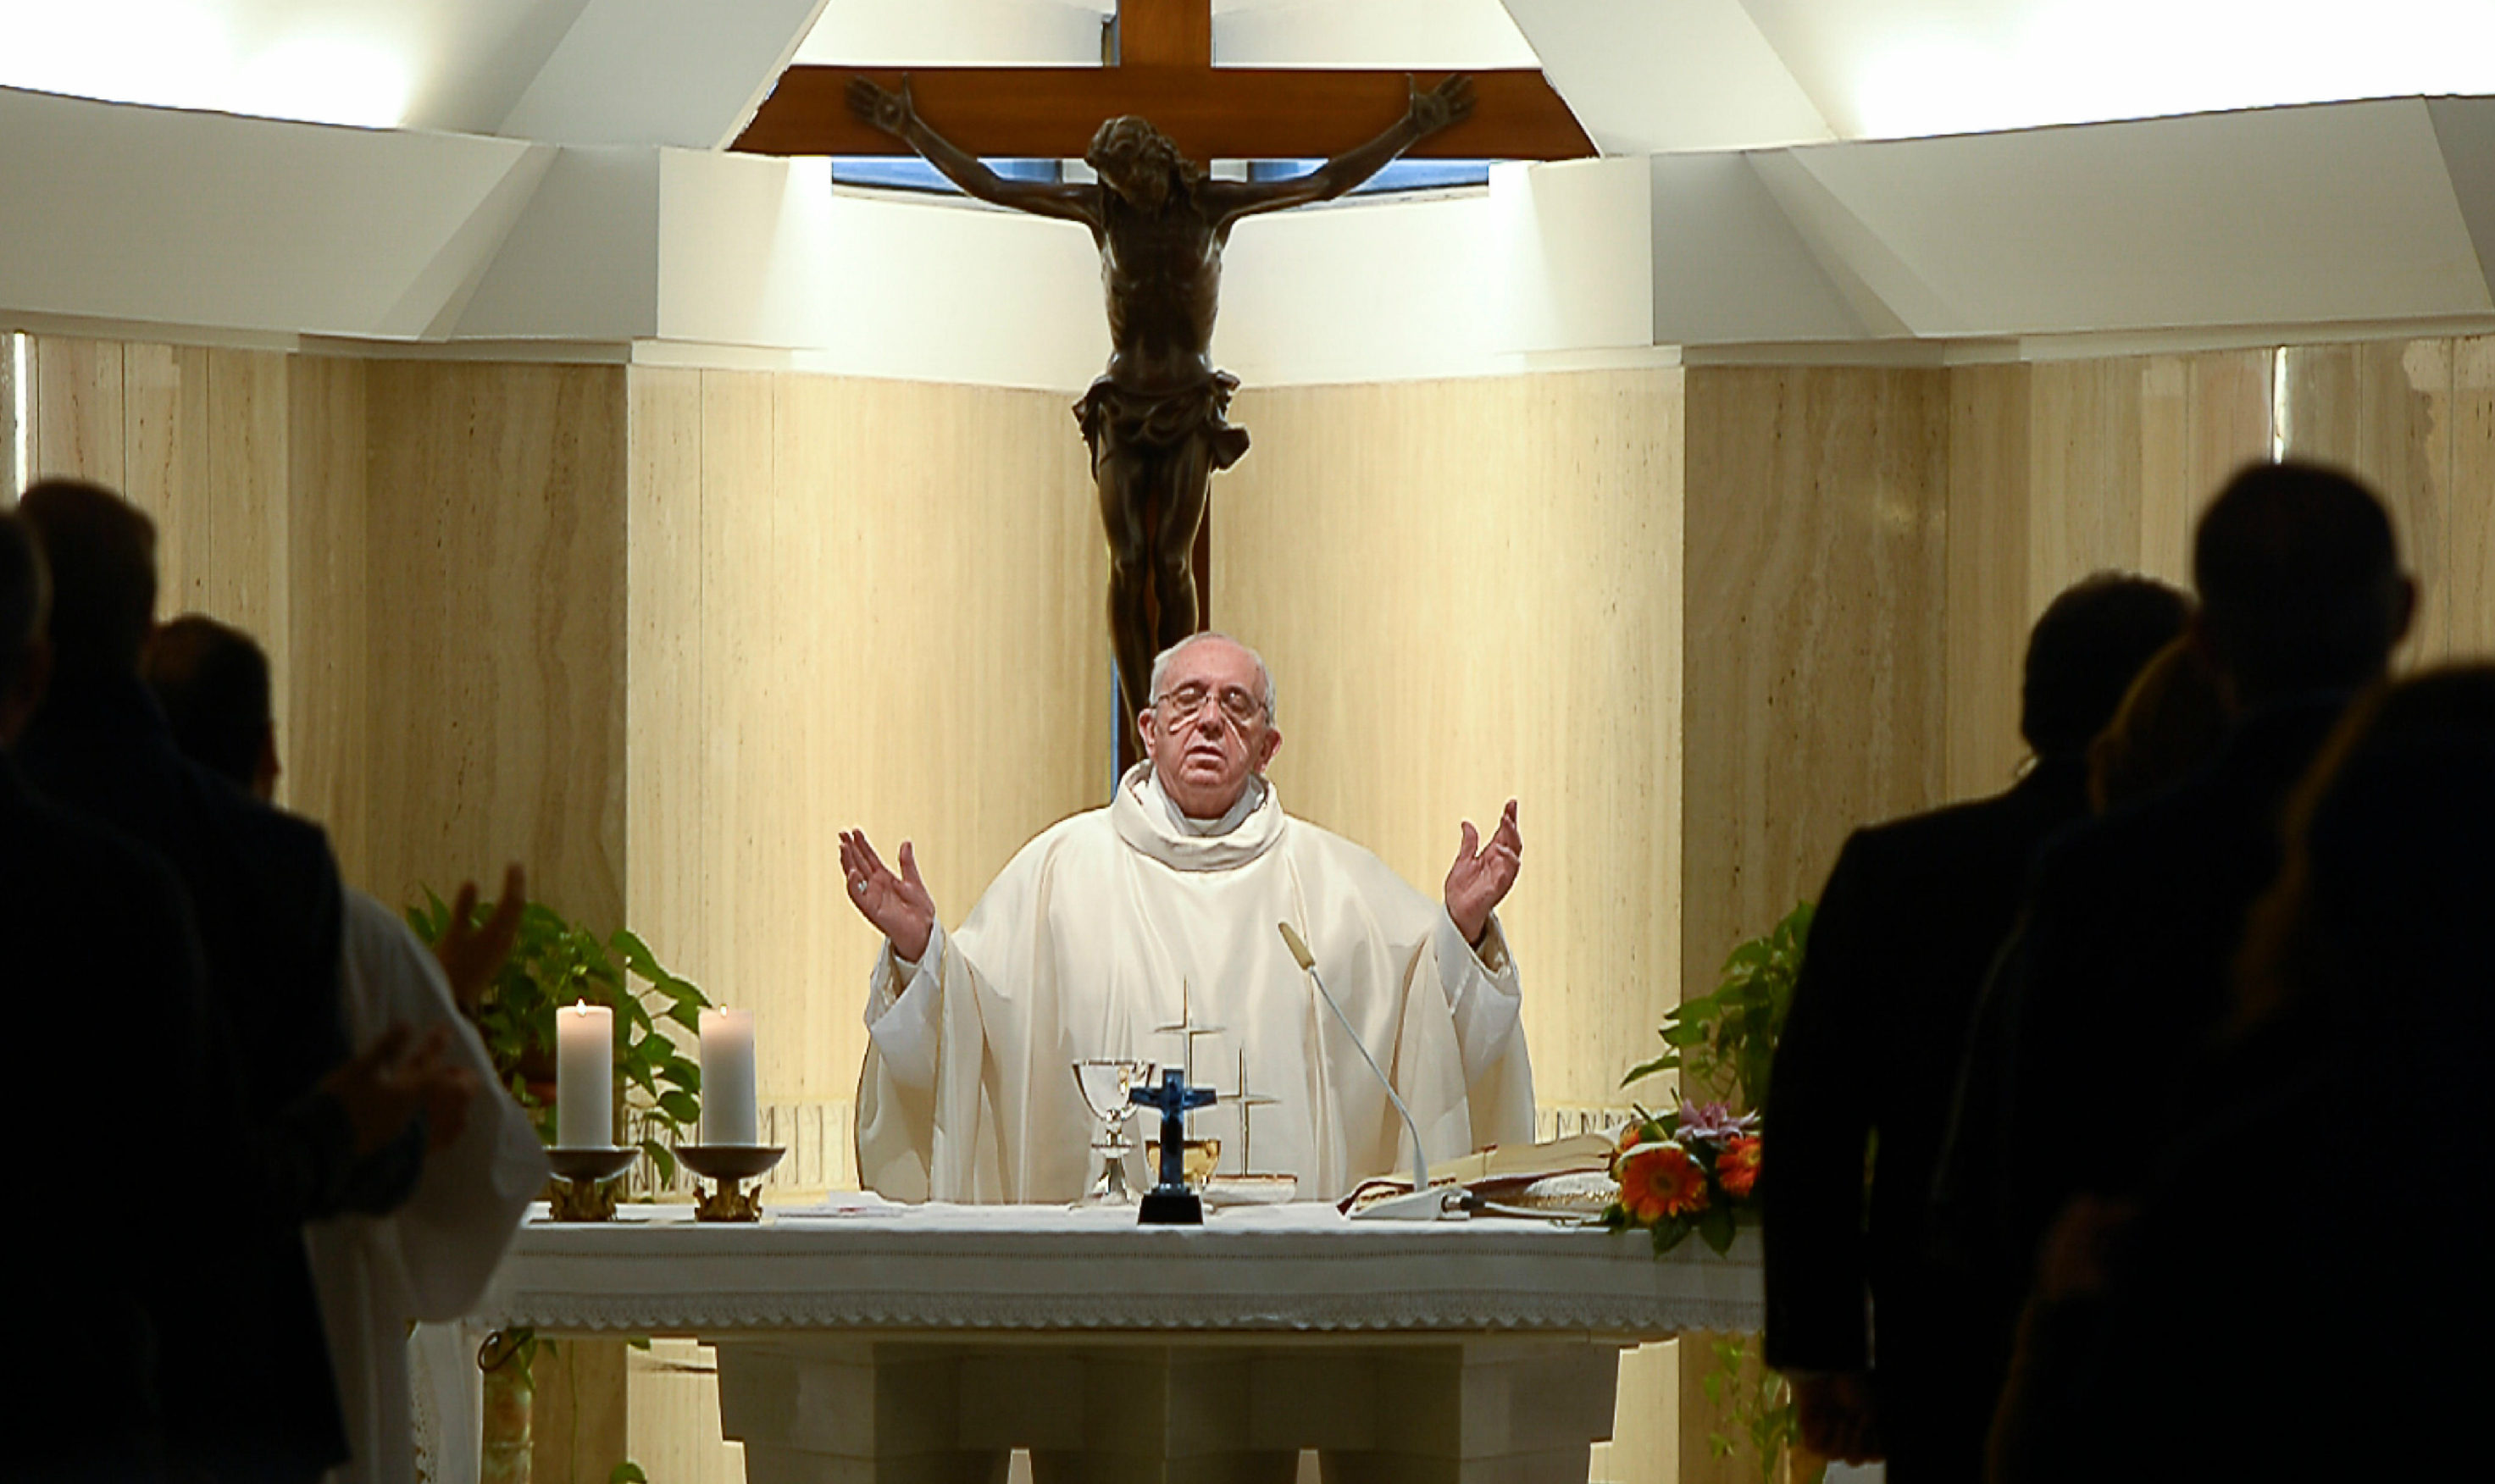 Pope Francis celebrating Mass in Santa Marta on Monday 25th of May 2015